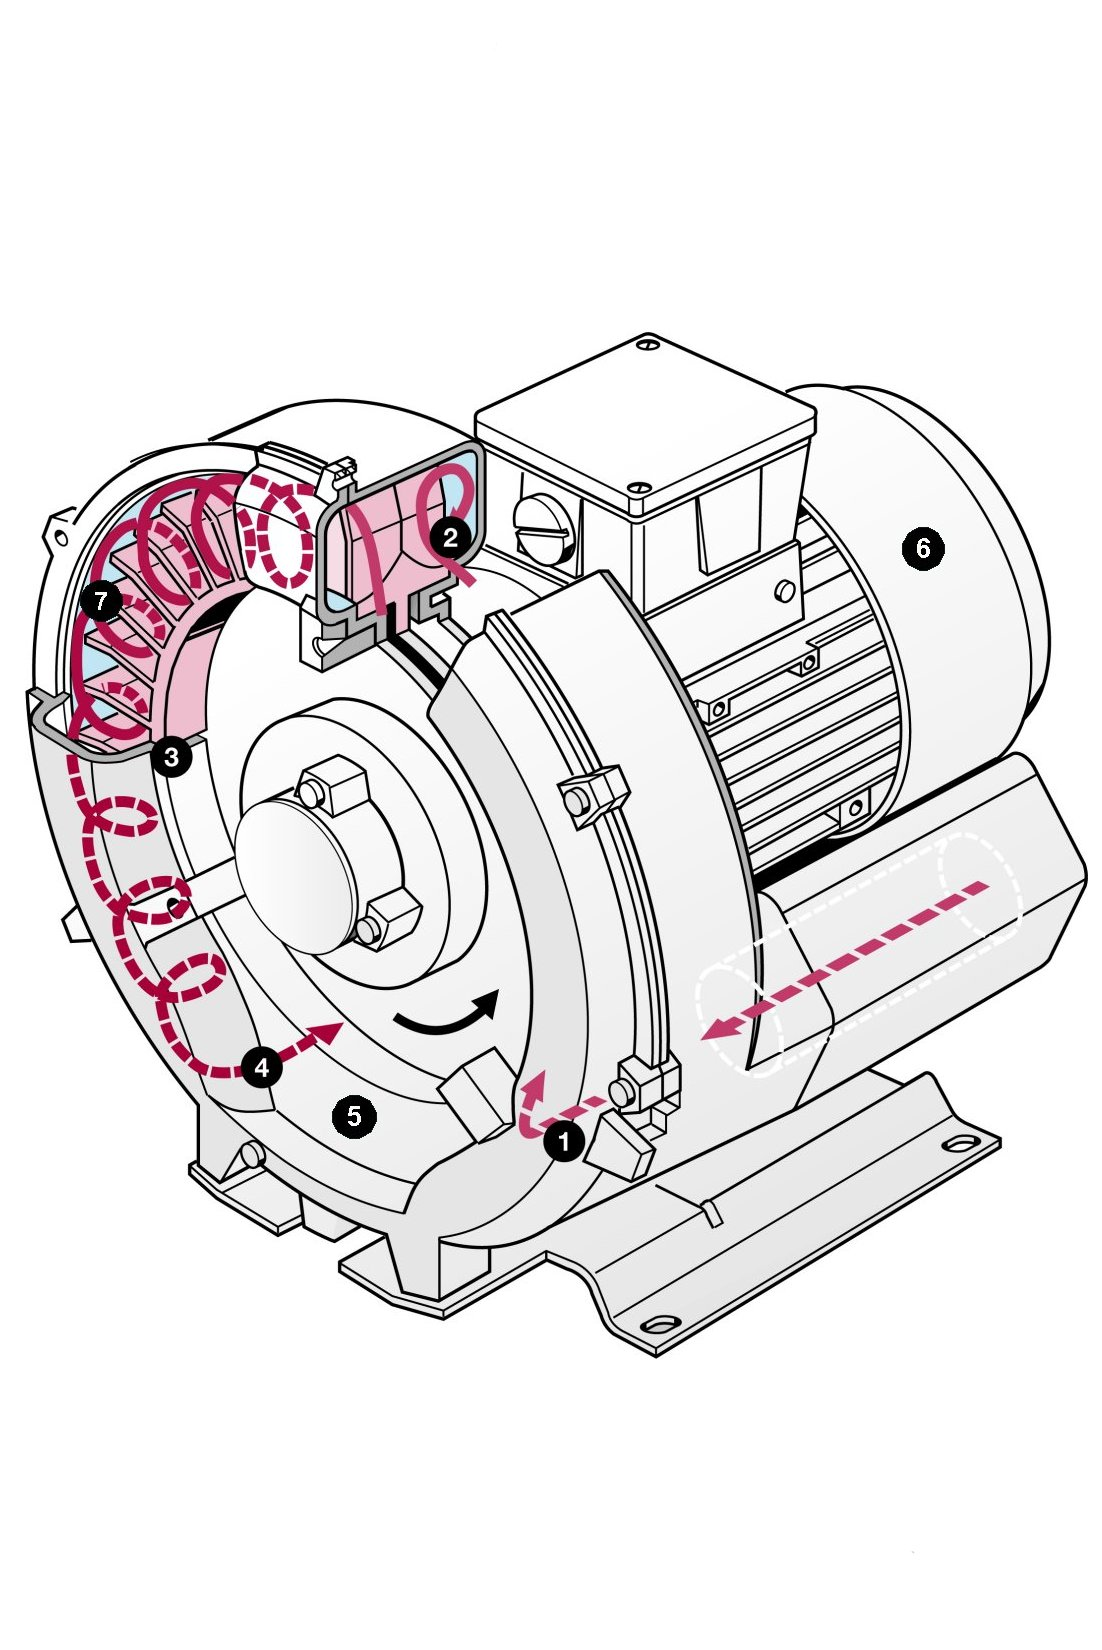 Vacuum pumps and pumping systems - Cutaway view of a single-stage side channel blower